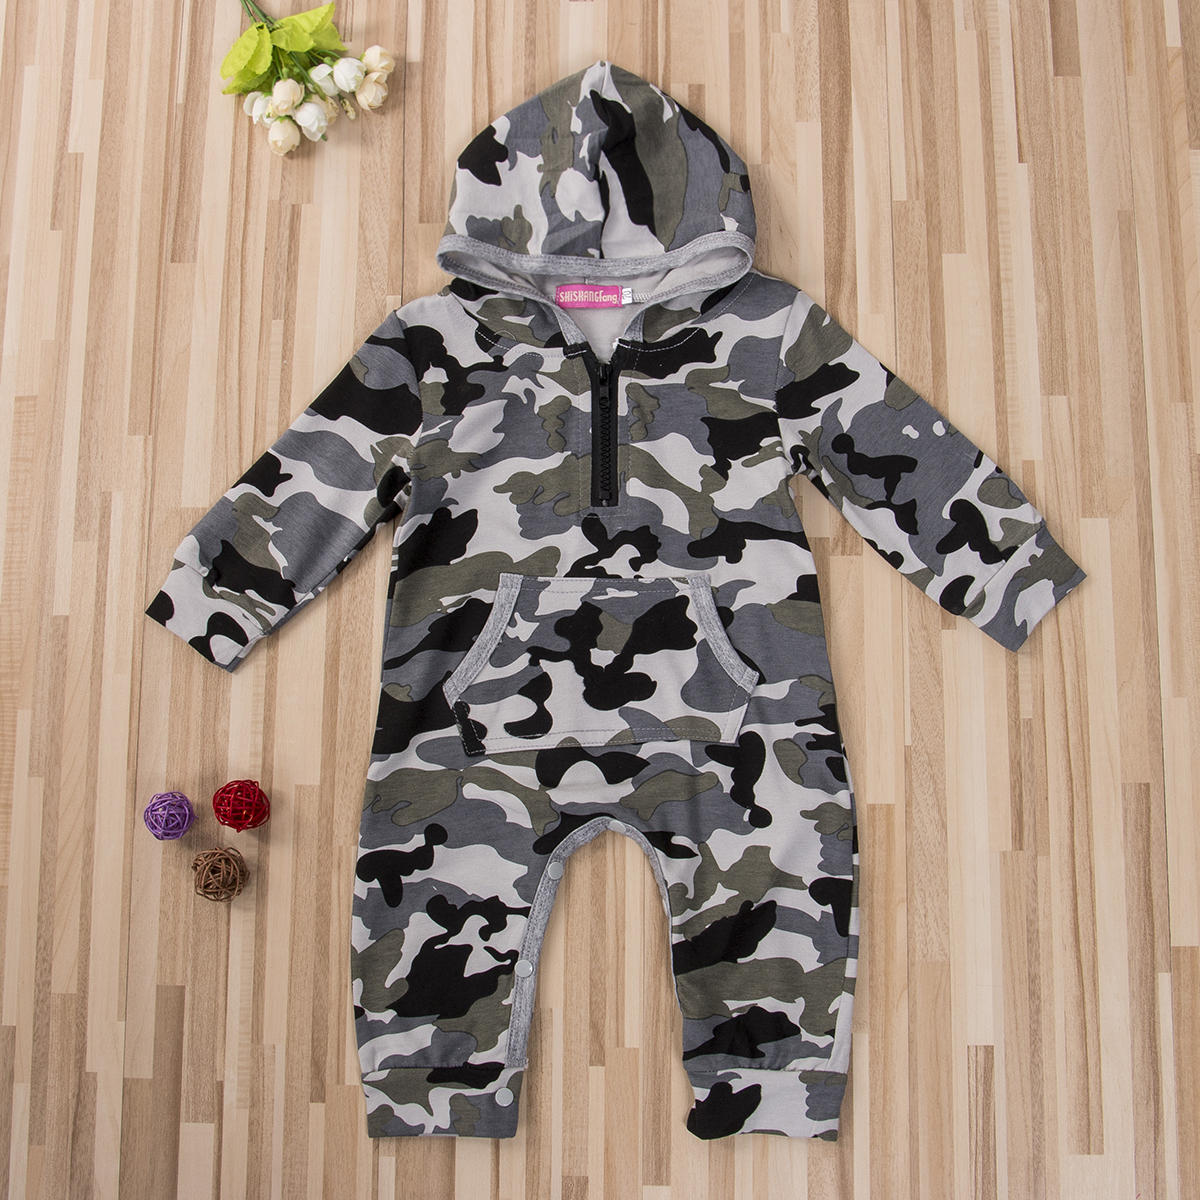 0-24M Infant Baby Boy Hooded Camouflage Romper Newborn Baby Camo Long Sleeve Romper Warm Spring Autumn Jumpsuit Outfit Boys